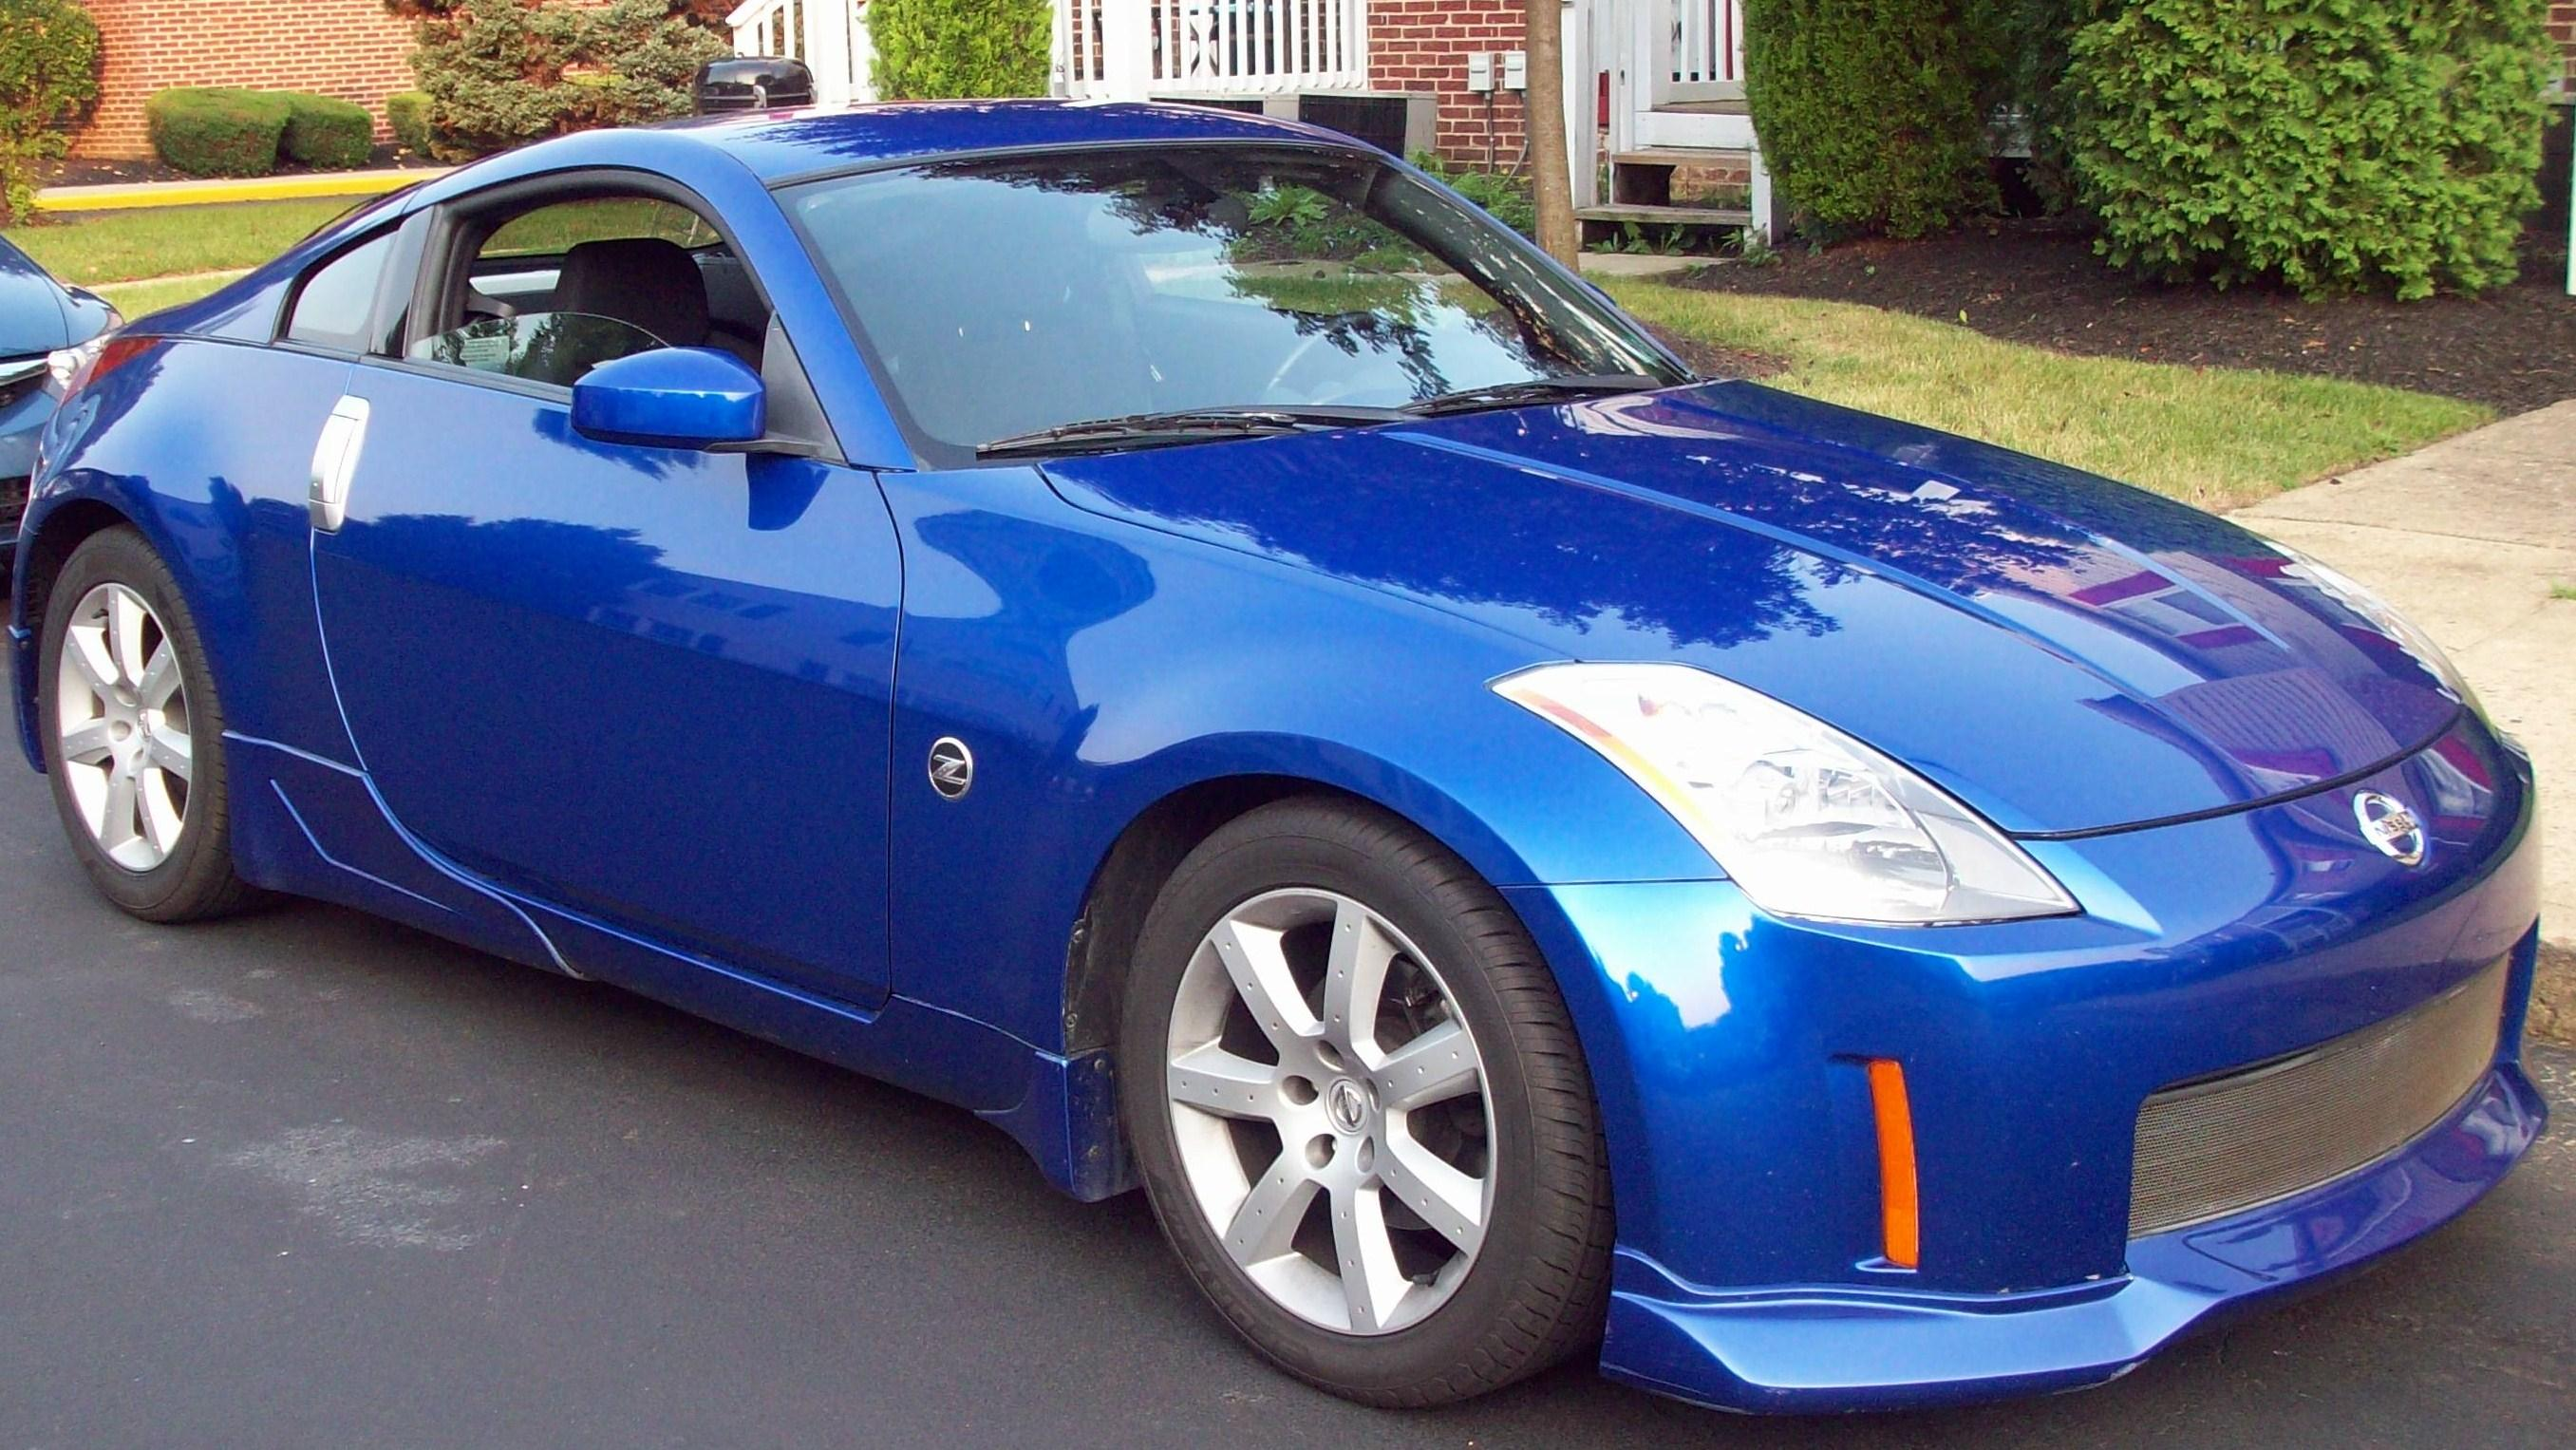 2004 nissan 350z coupe specs image gallery hcpr ao2023 2004 nissan 350z vanachro Gallery